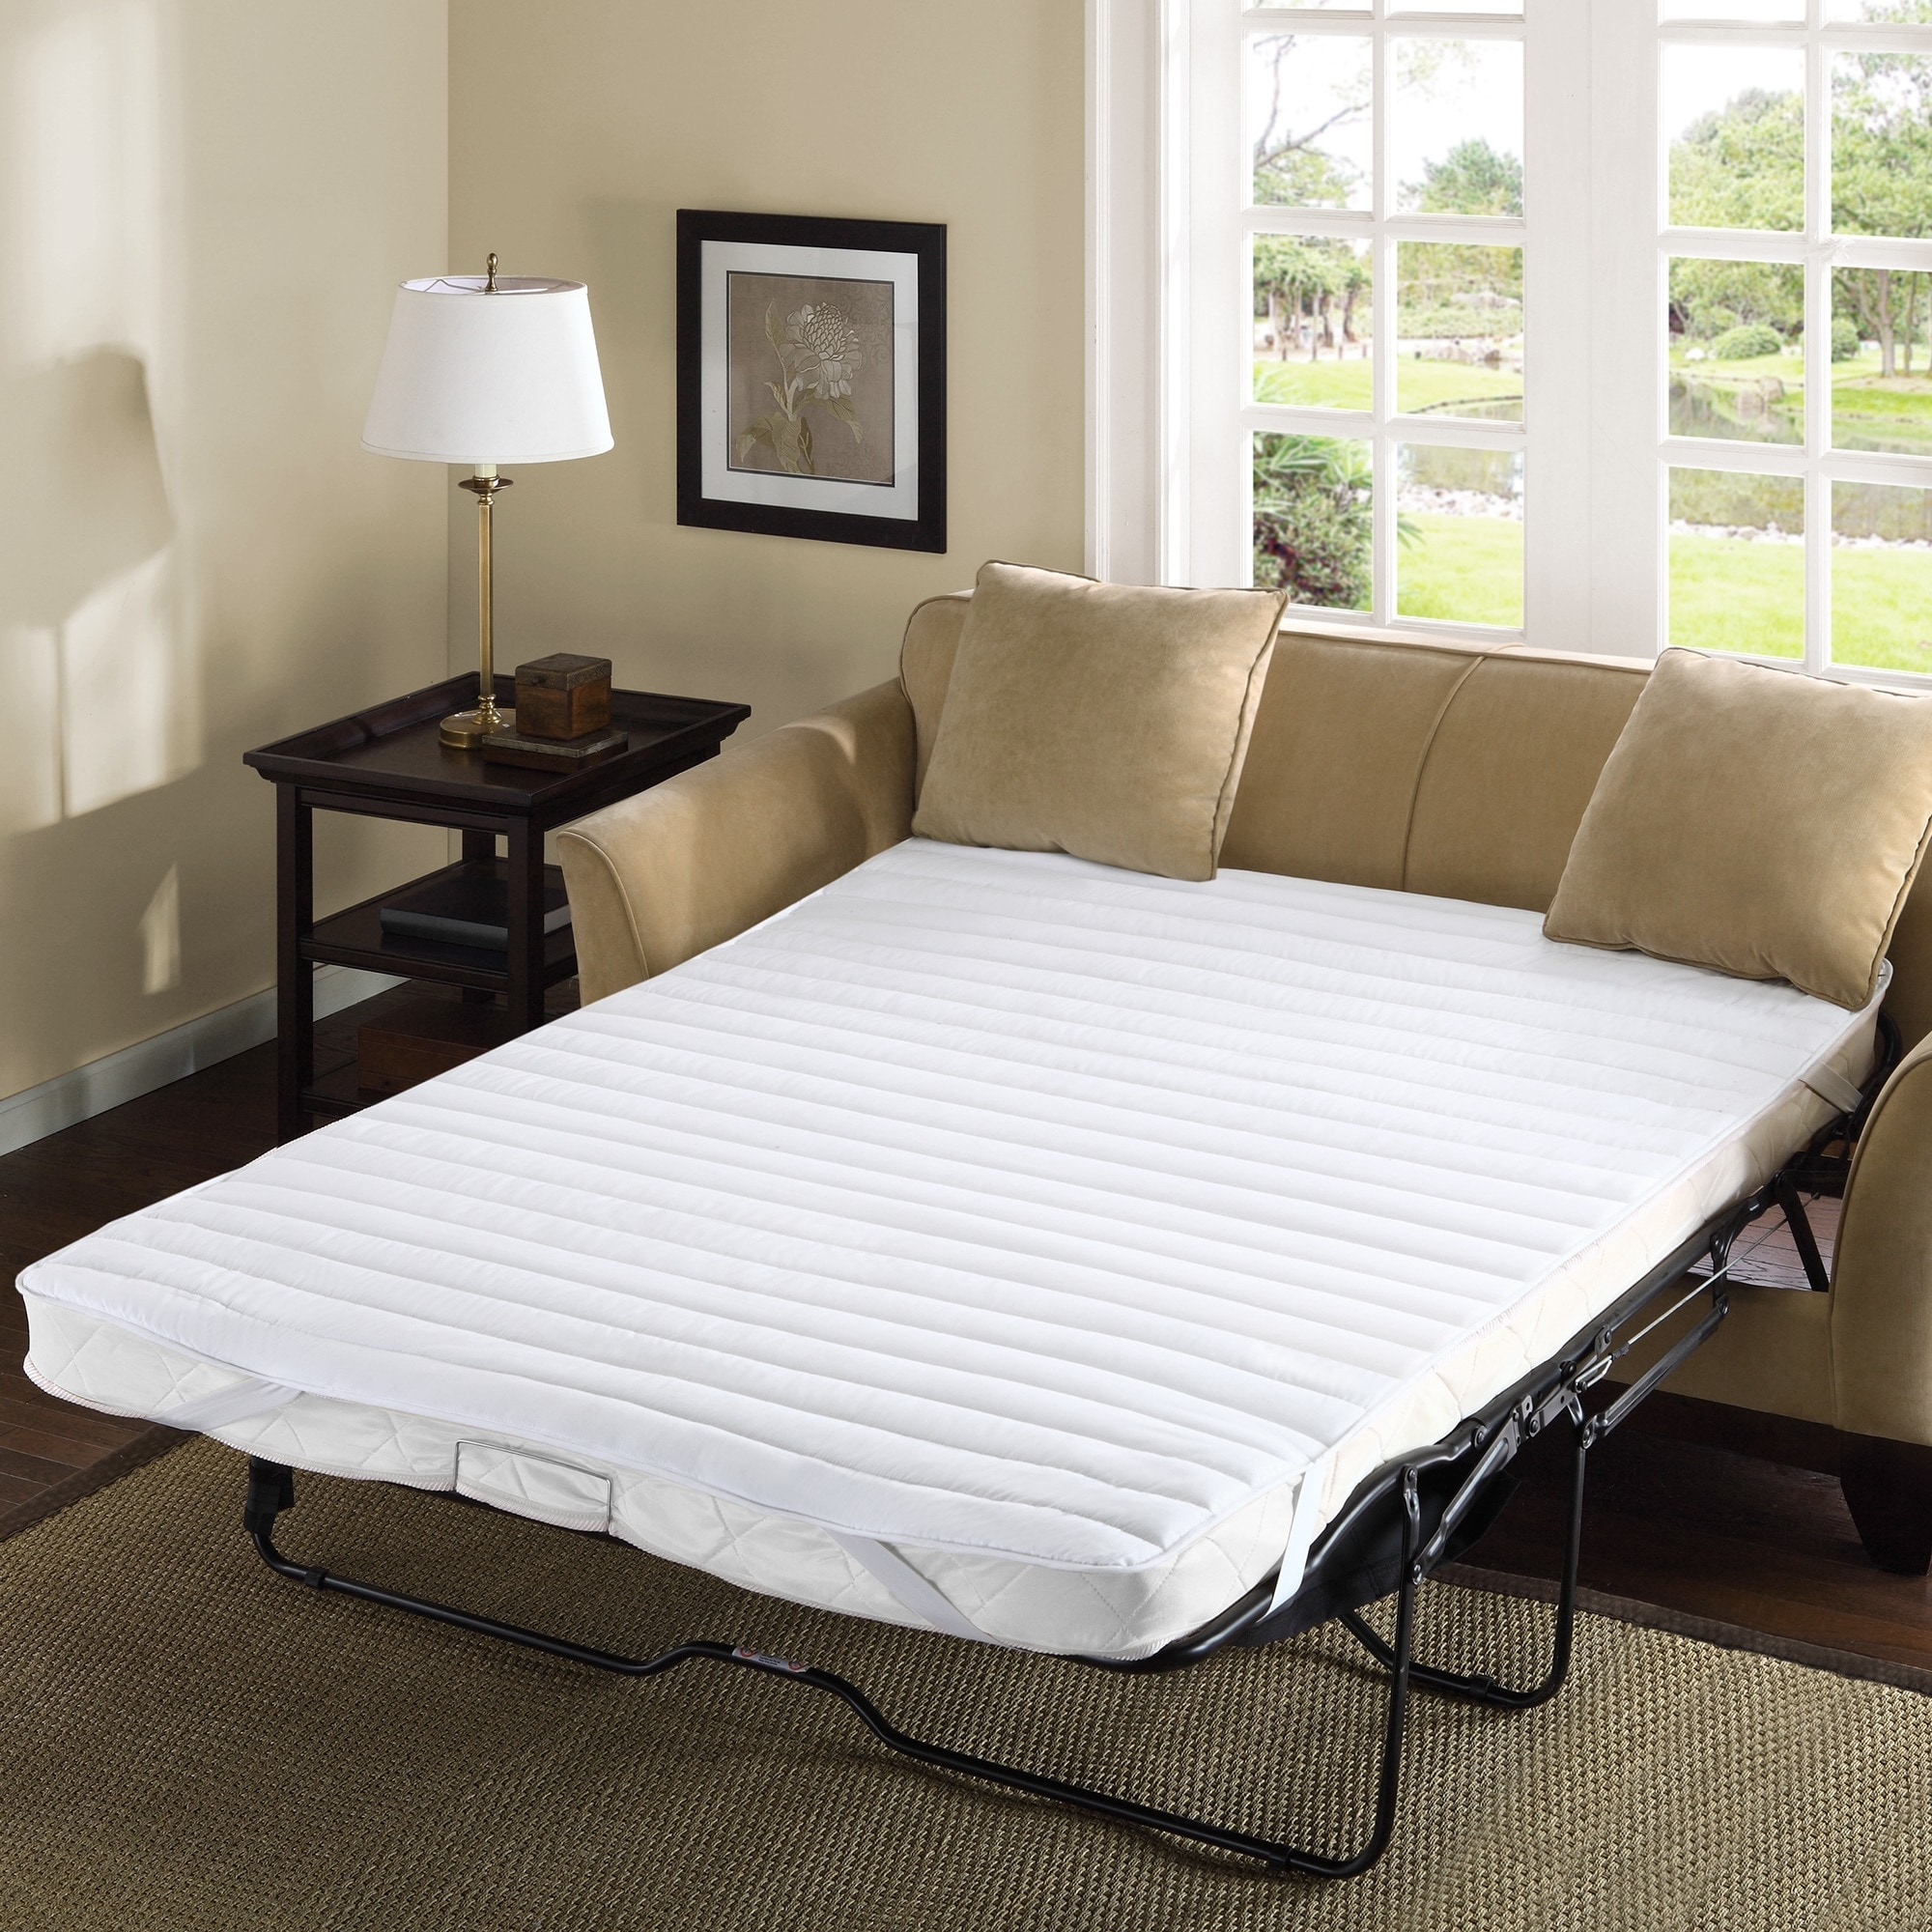 Madison Park Essentials Delta Waterproof Quilted Microfiber Sofa Bed Pad White Free Shipping On Orders Over 45 8019207